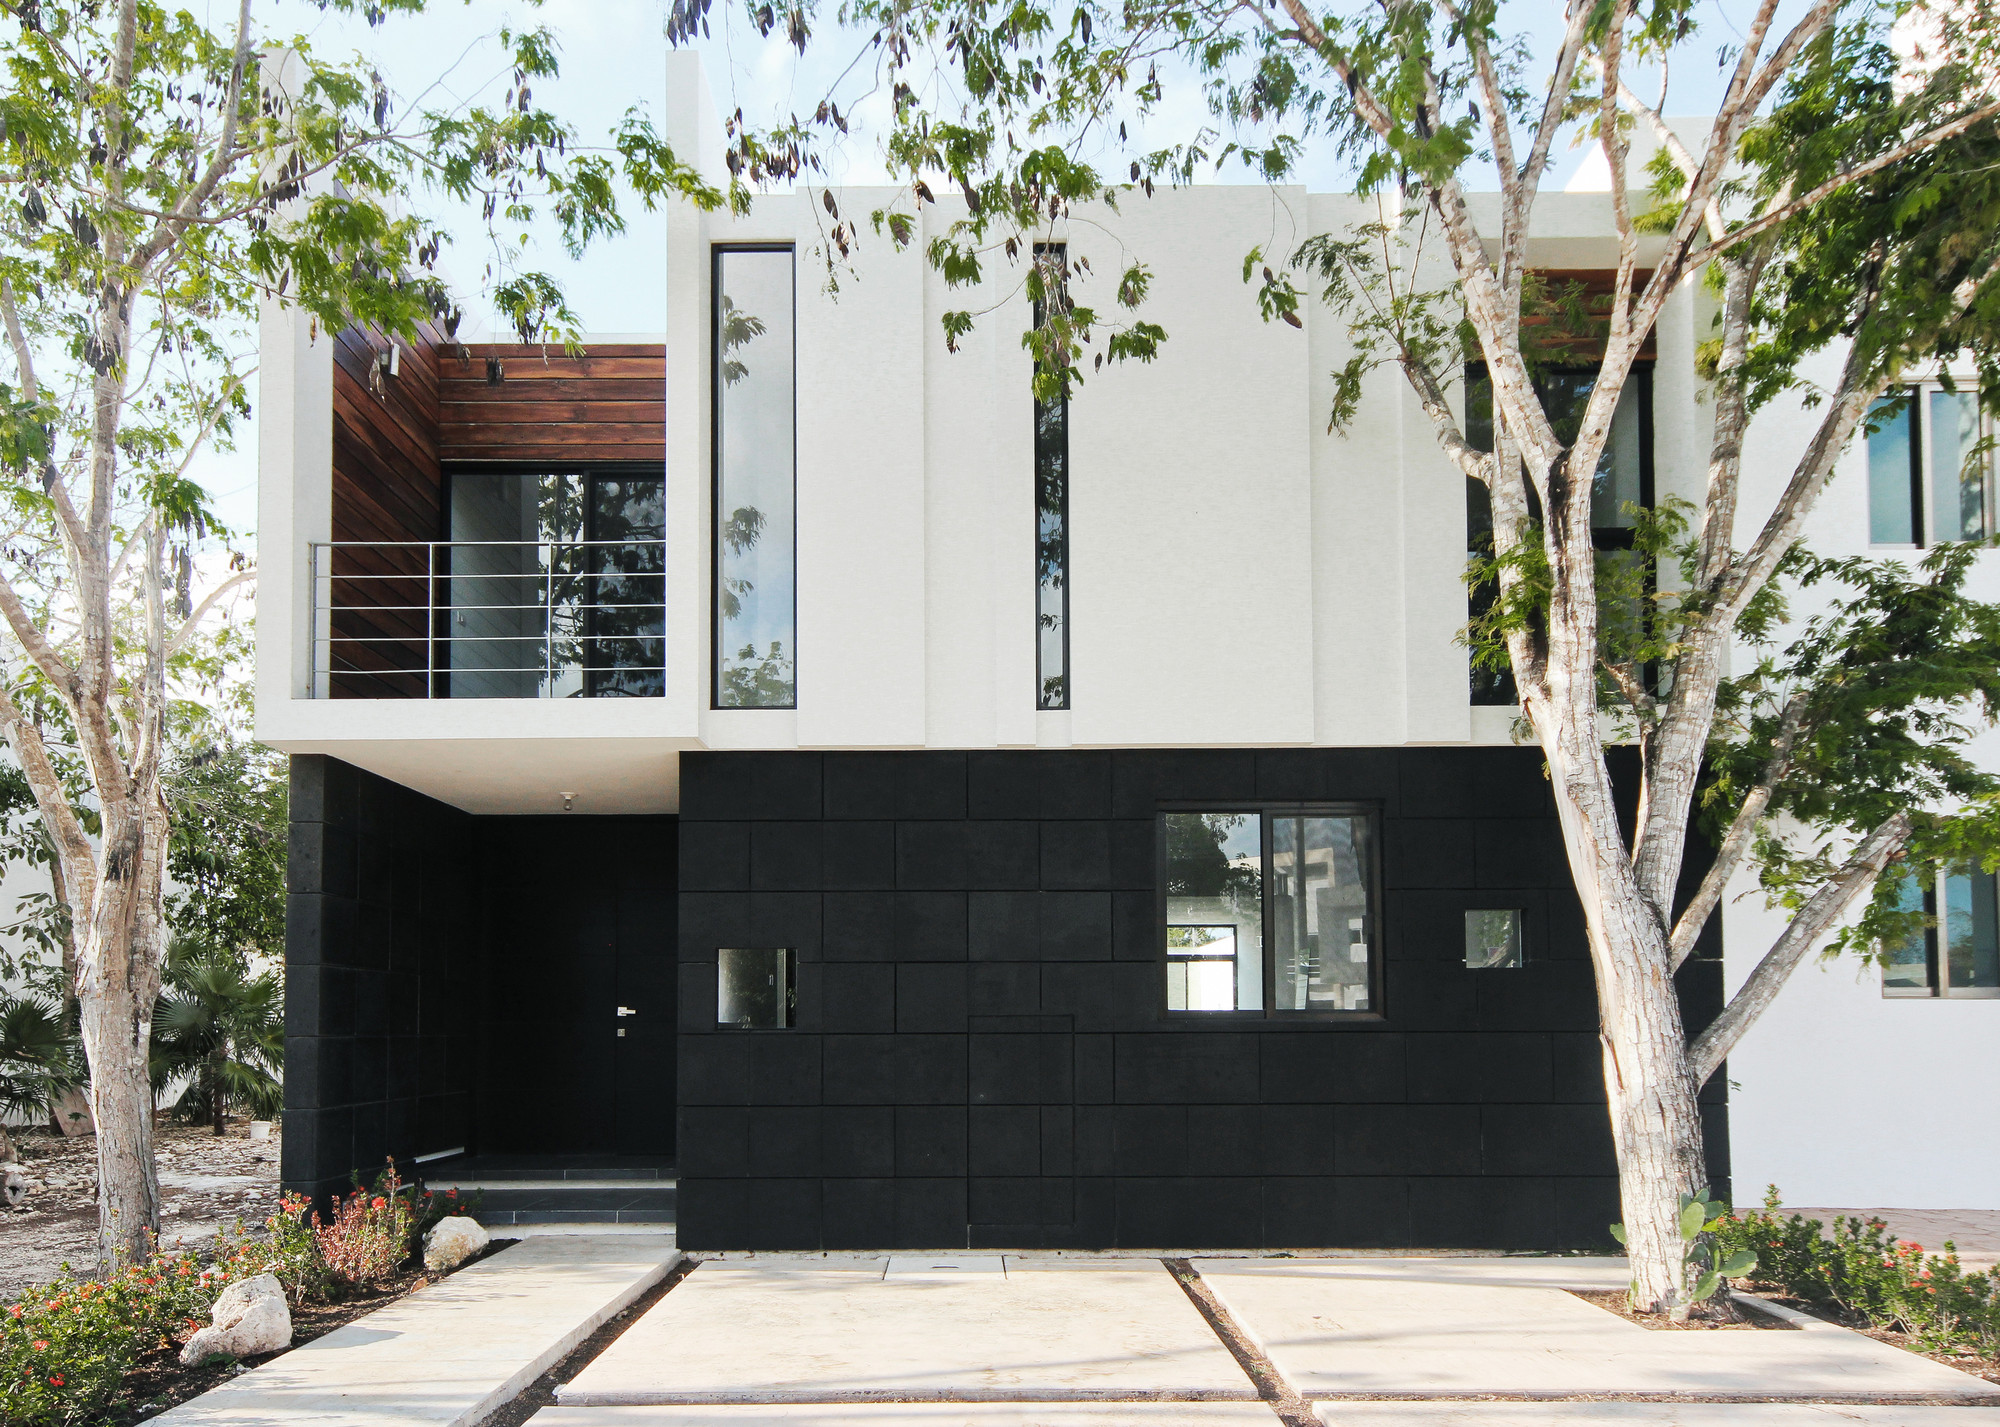 Casa W39  / Warm Architects, © Zaruhy Sangochian